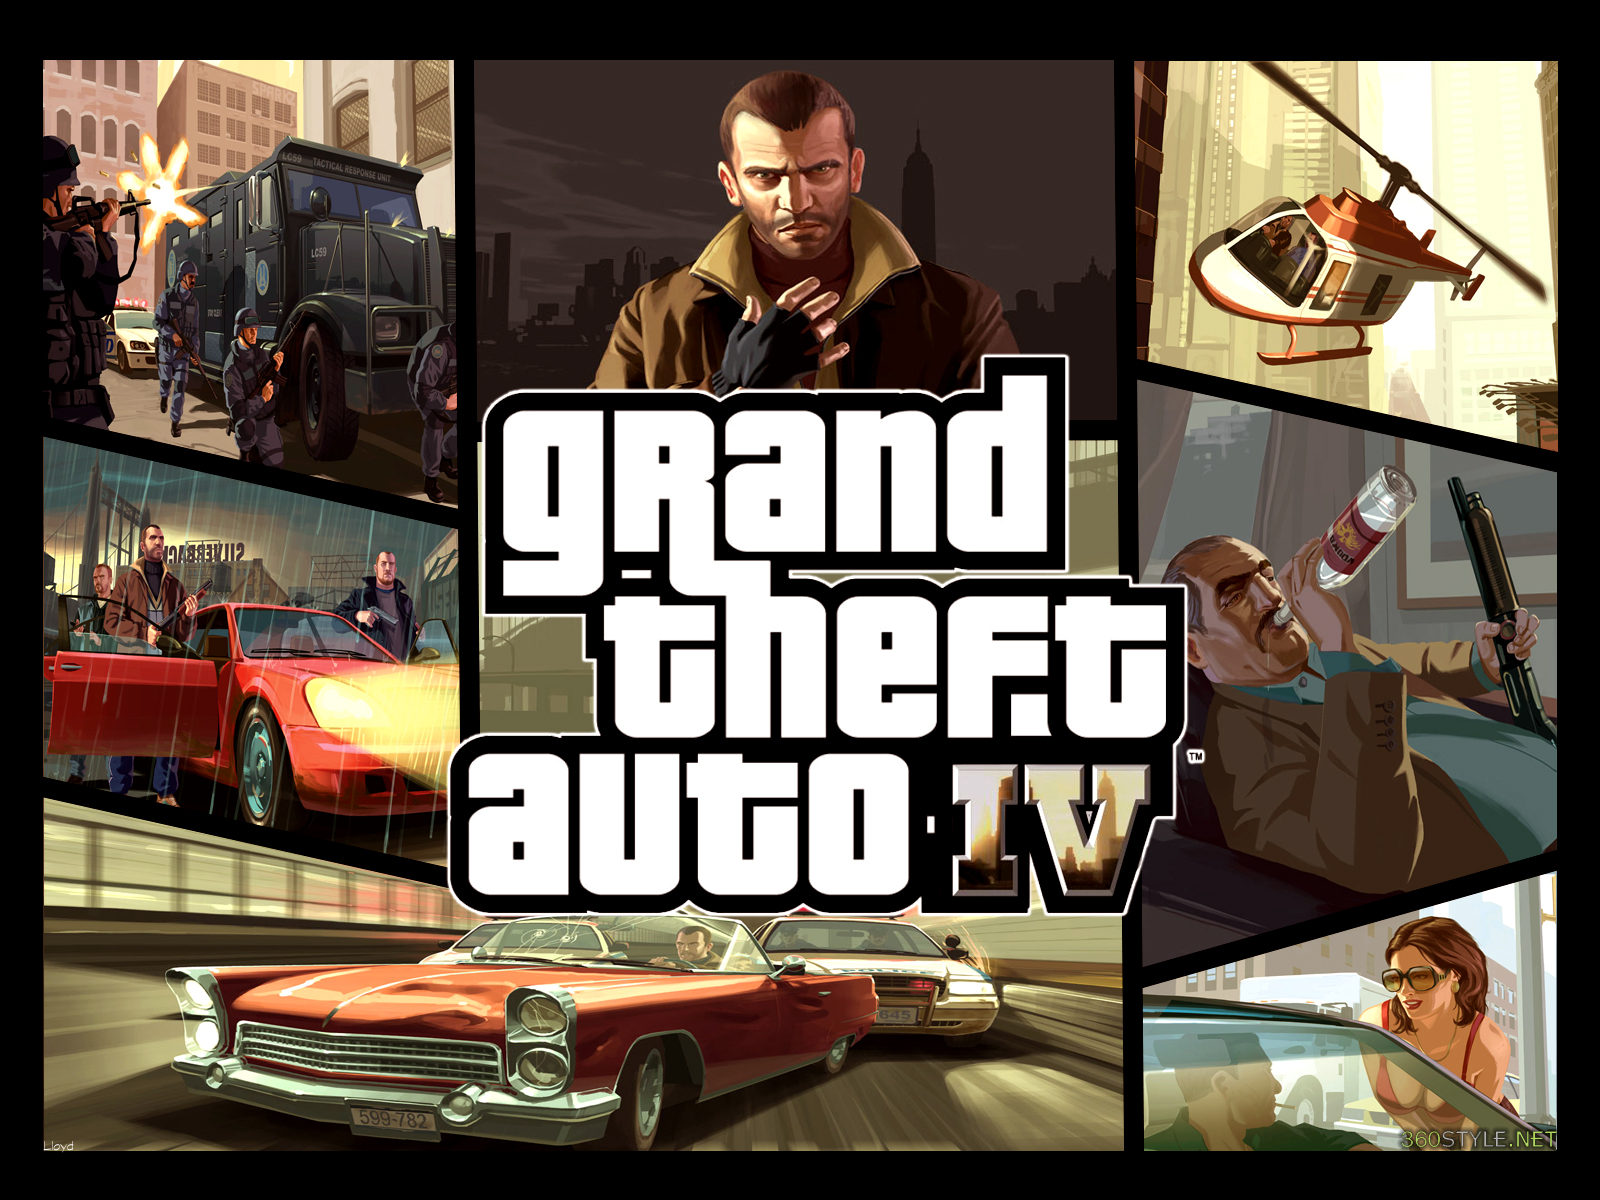 grand theft auto iv wallpaper by igotgame1075 fan art wallpaper games 1600x1200